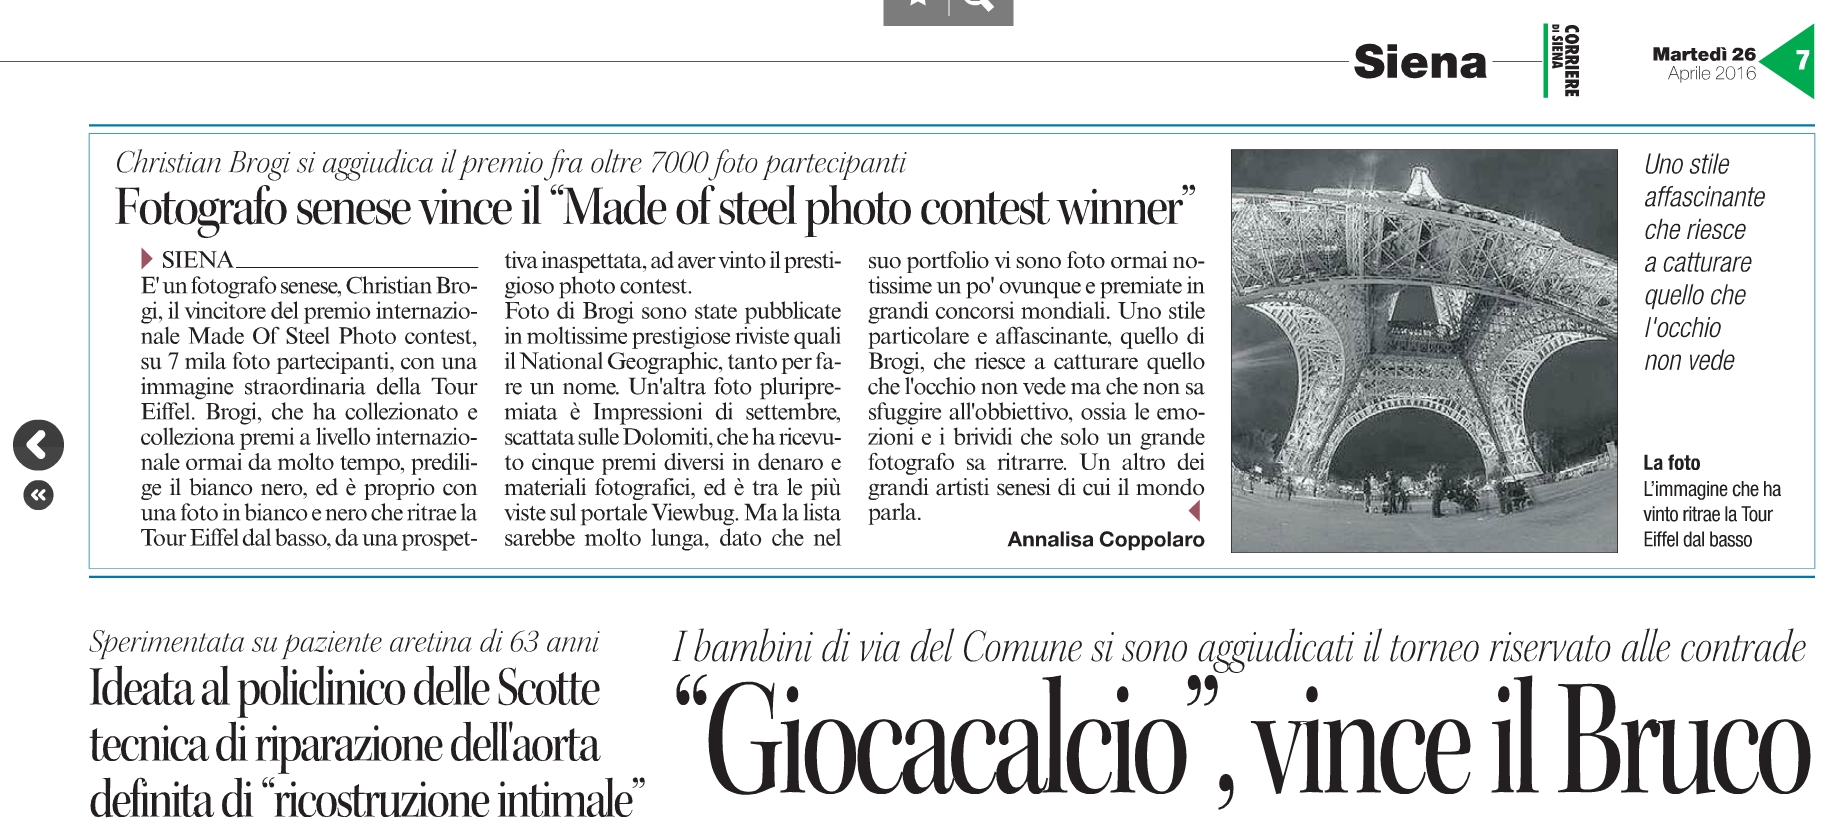 "Fotografo senese vince il ""Made of steel photo contest winner"""